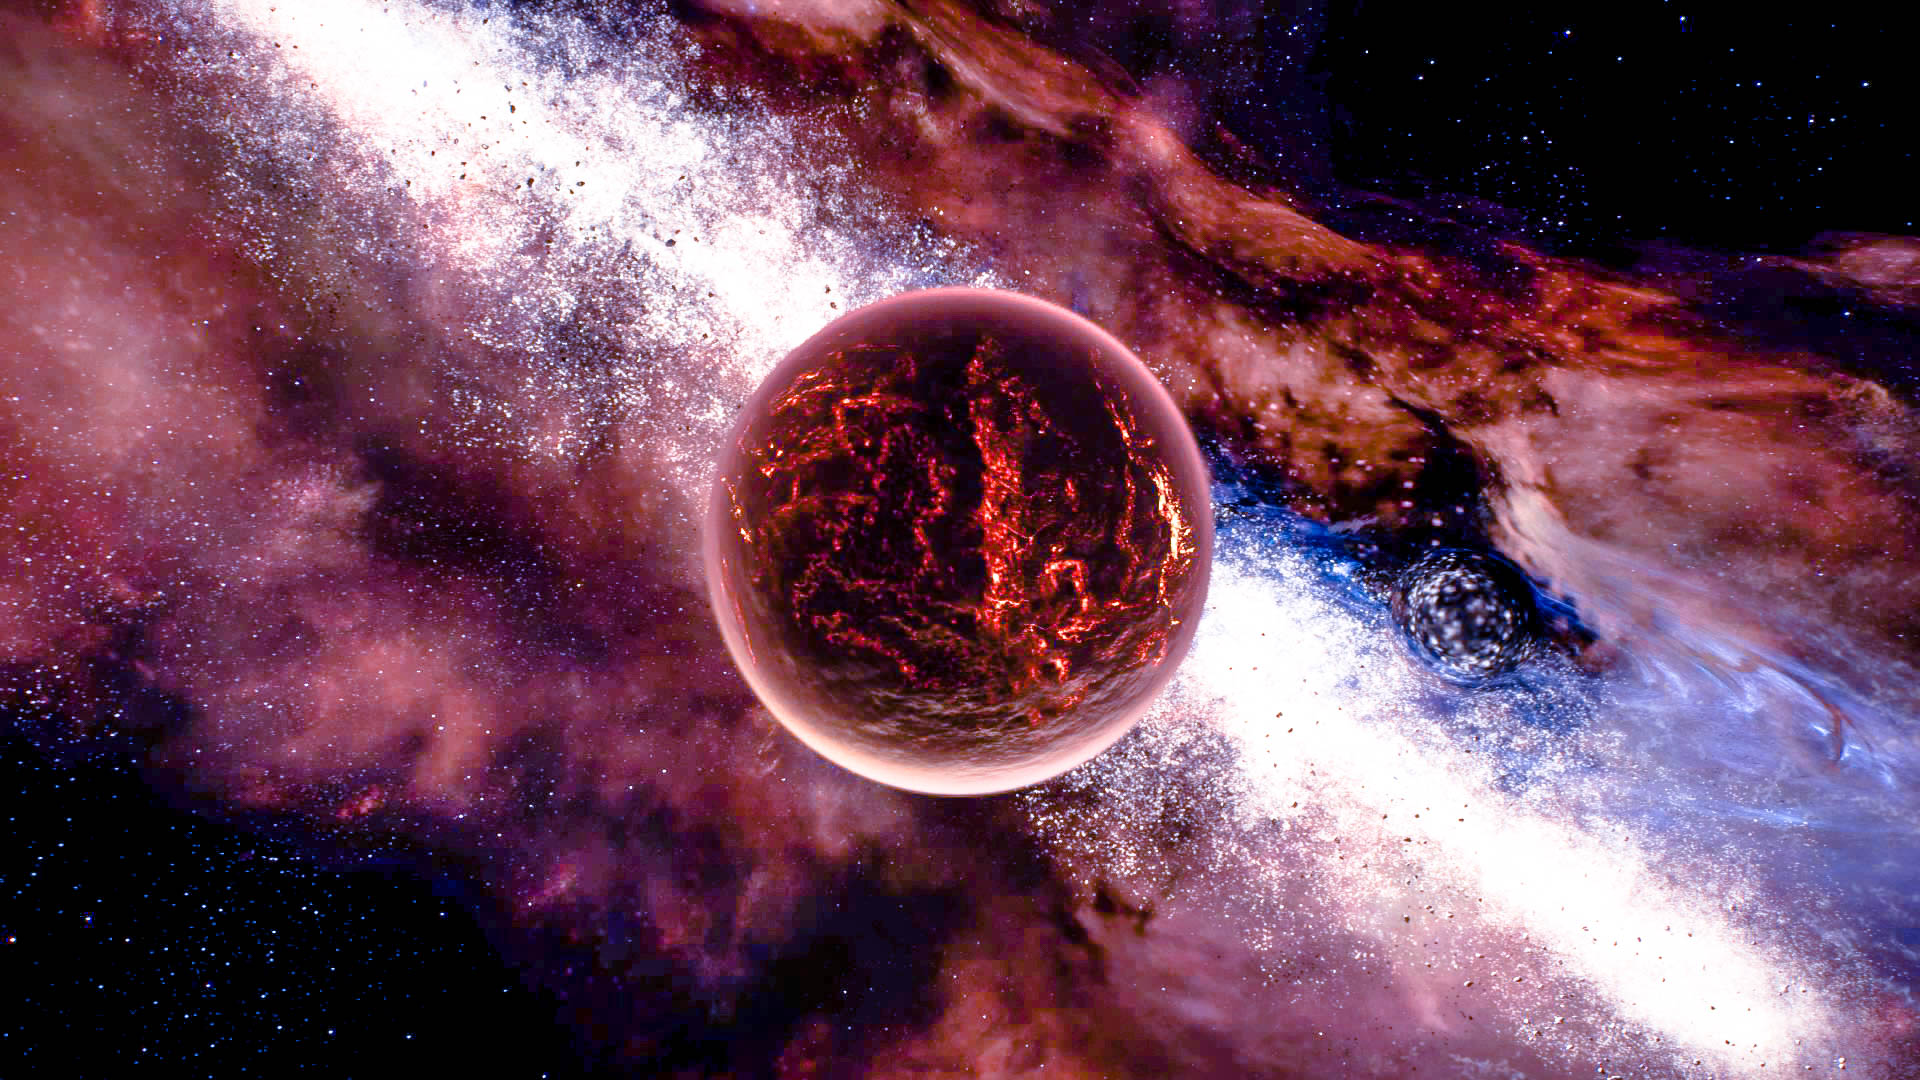 Planet X desined by DLDigital